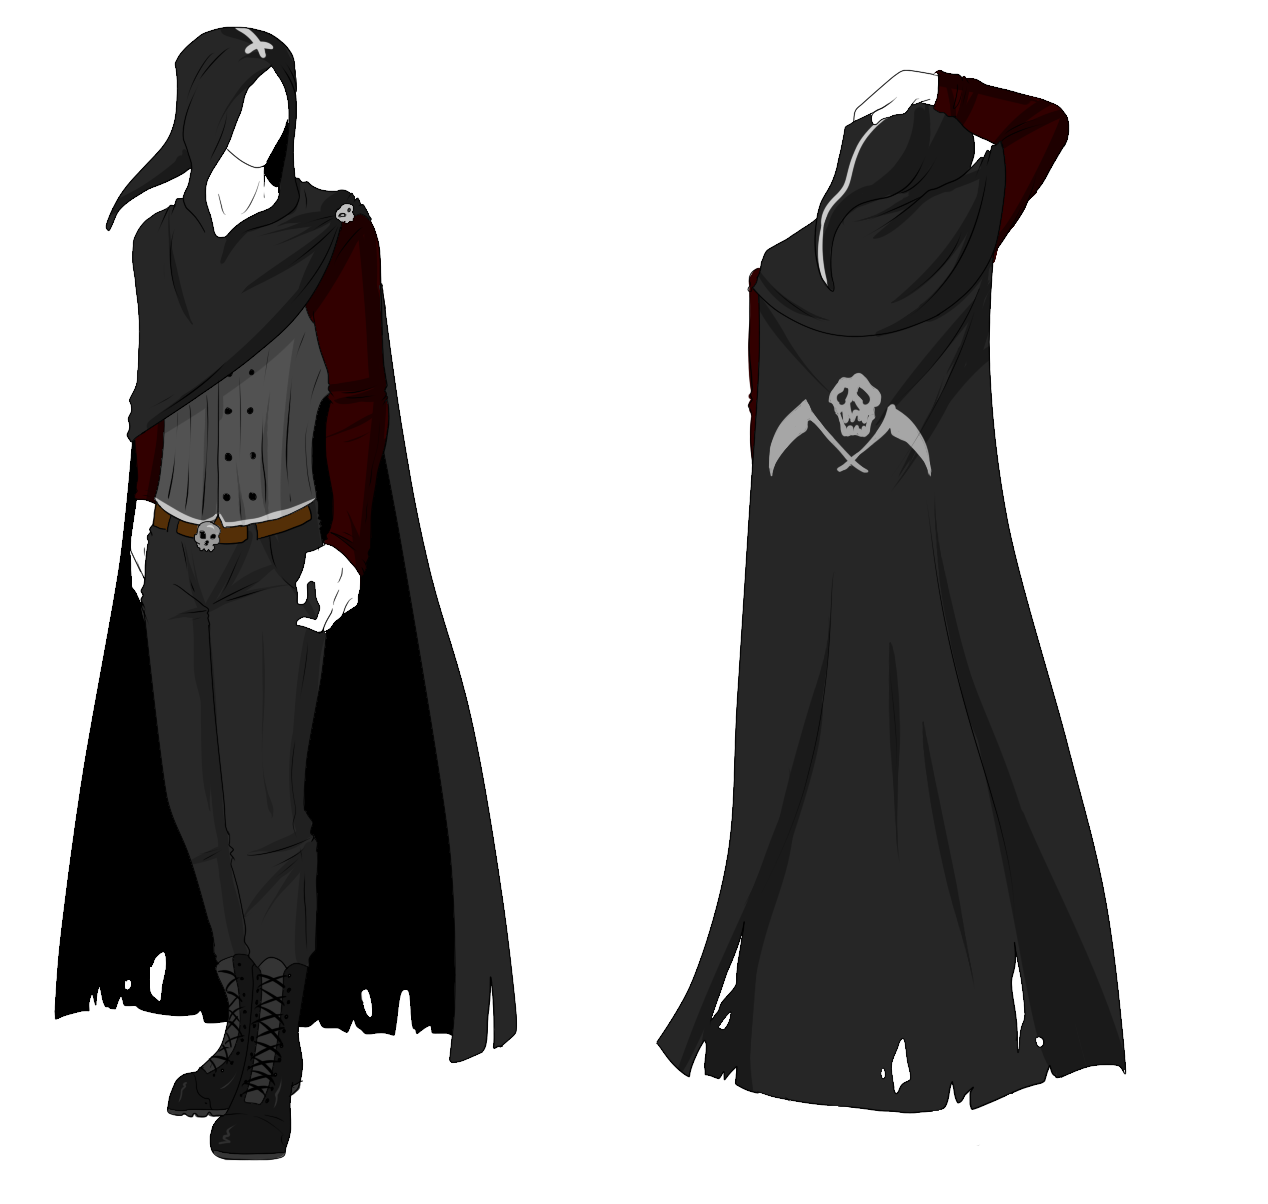 drawing capes male assassin outfit